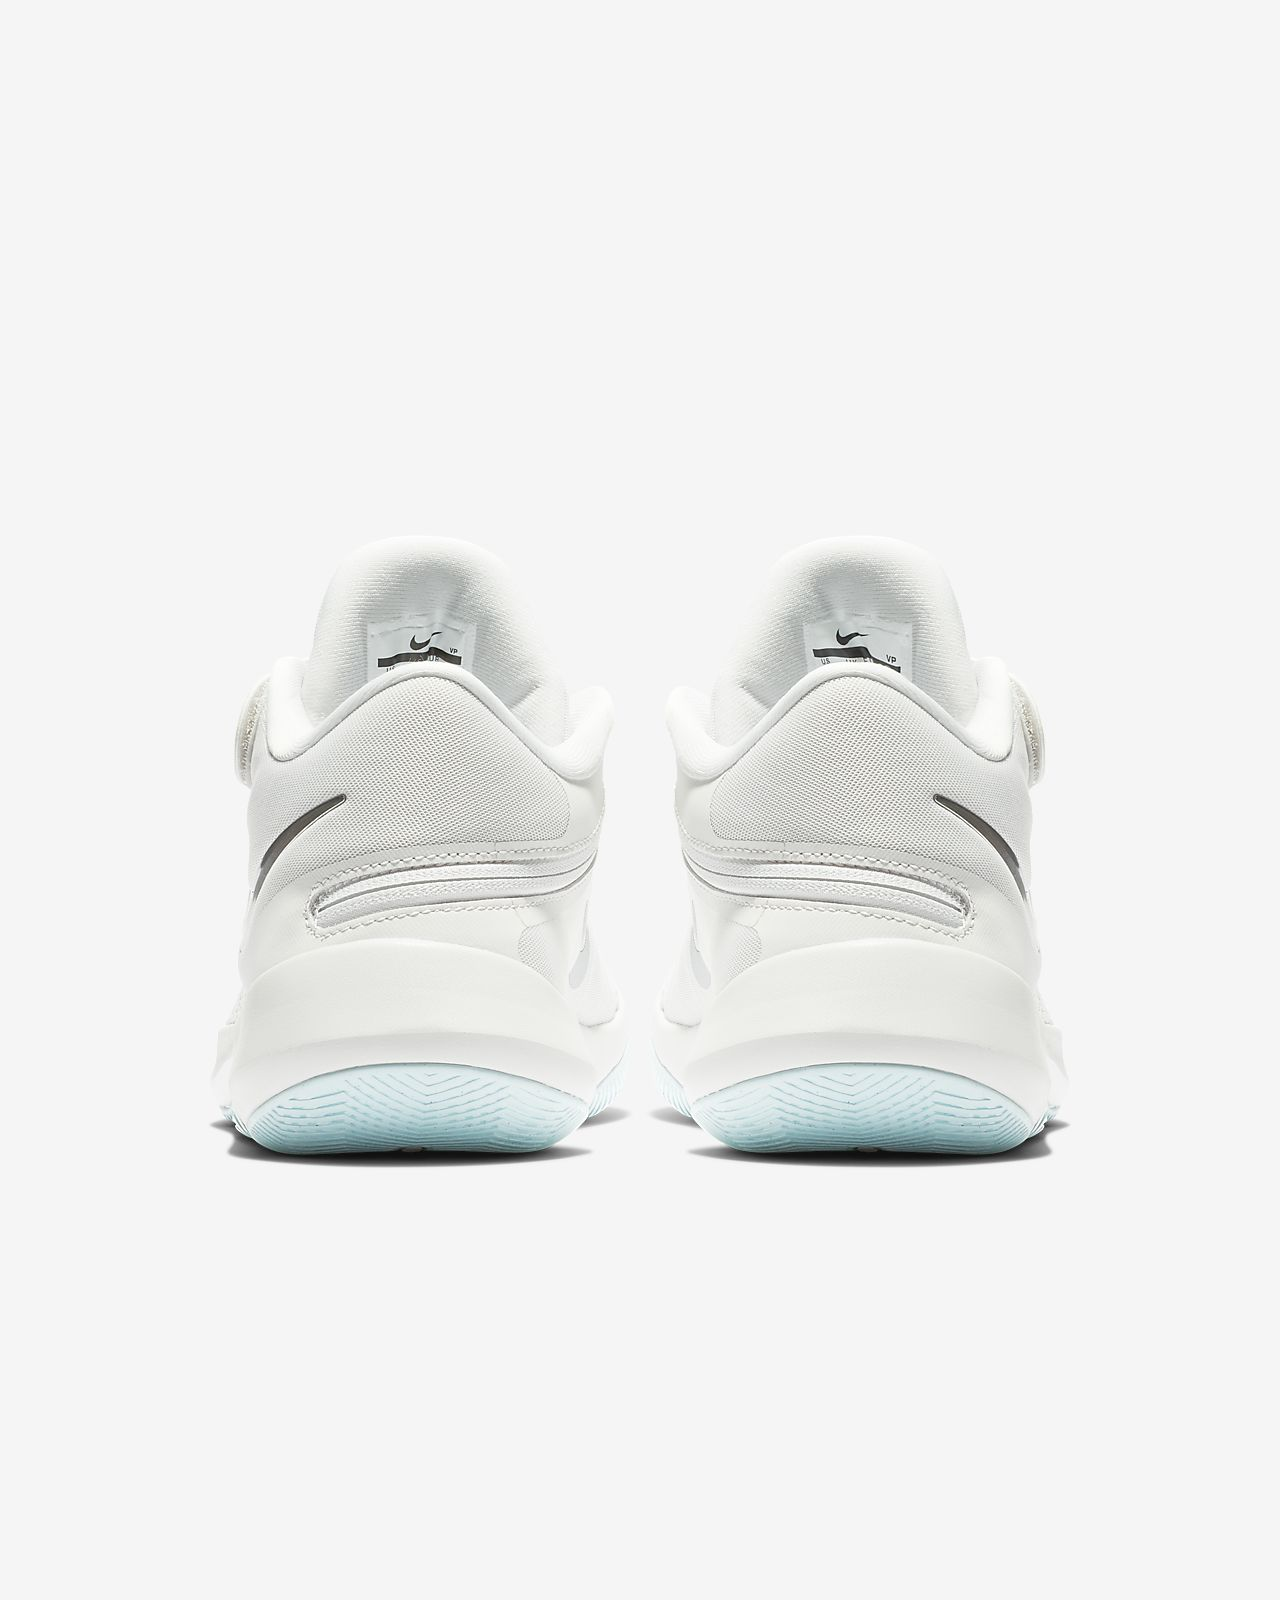 574d069c3eb8 Nike Air Precision II FlyEase (Extra-Wide) Women s Basketball Shoe ...